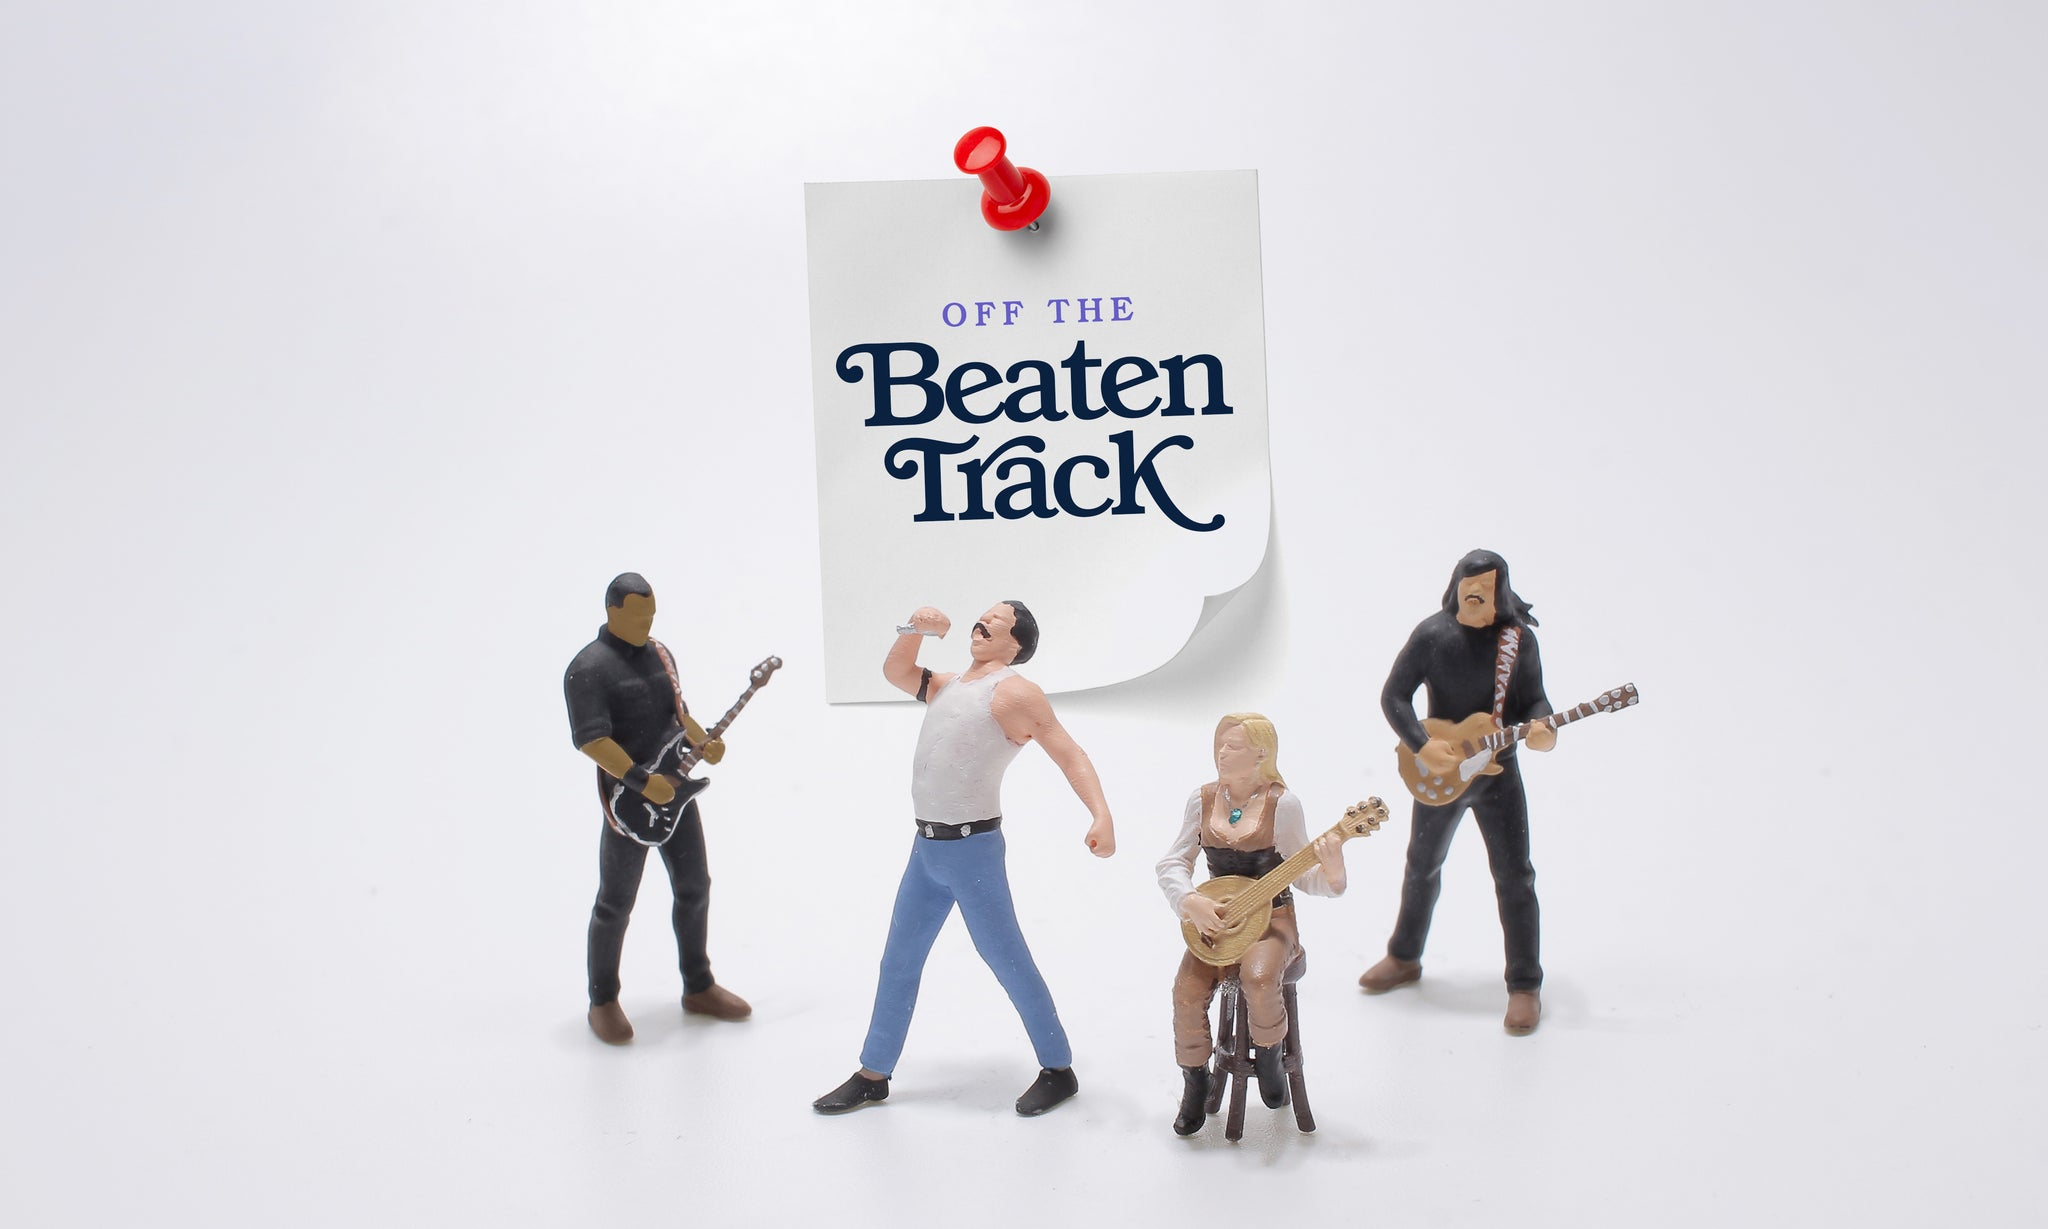 Off the beaten track. Toy pop band playing music.